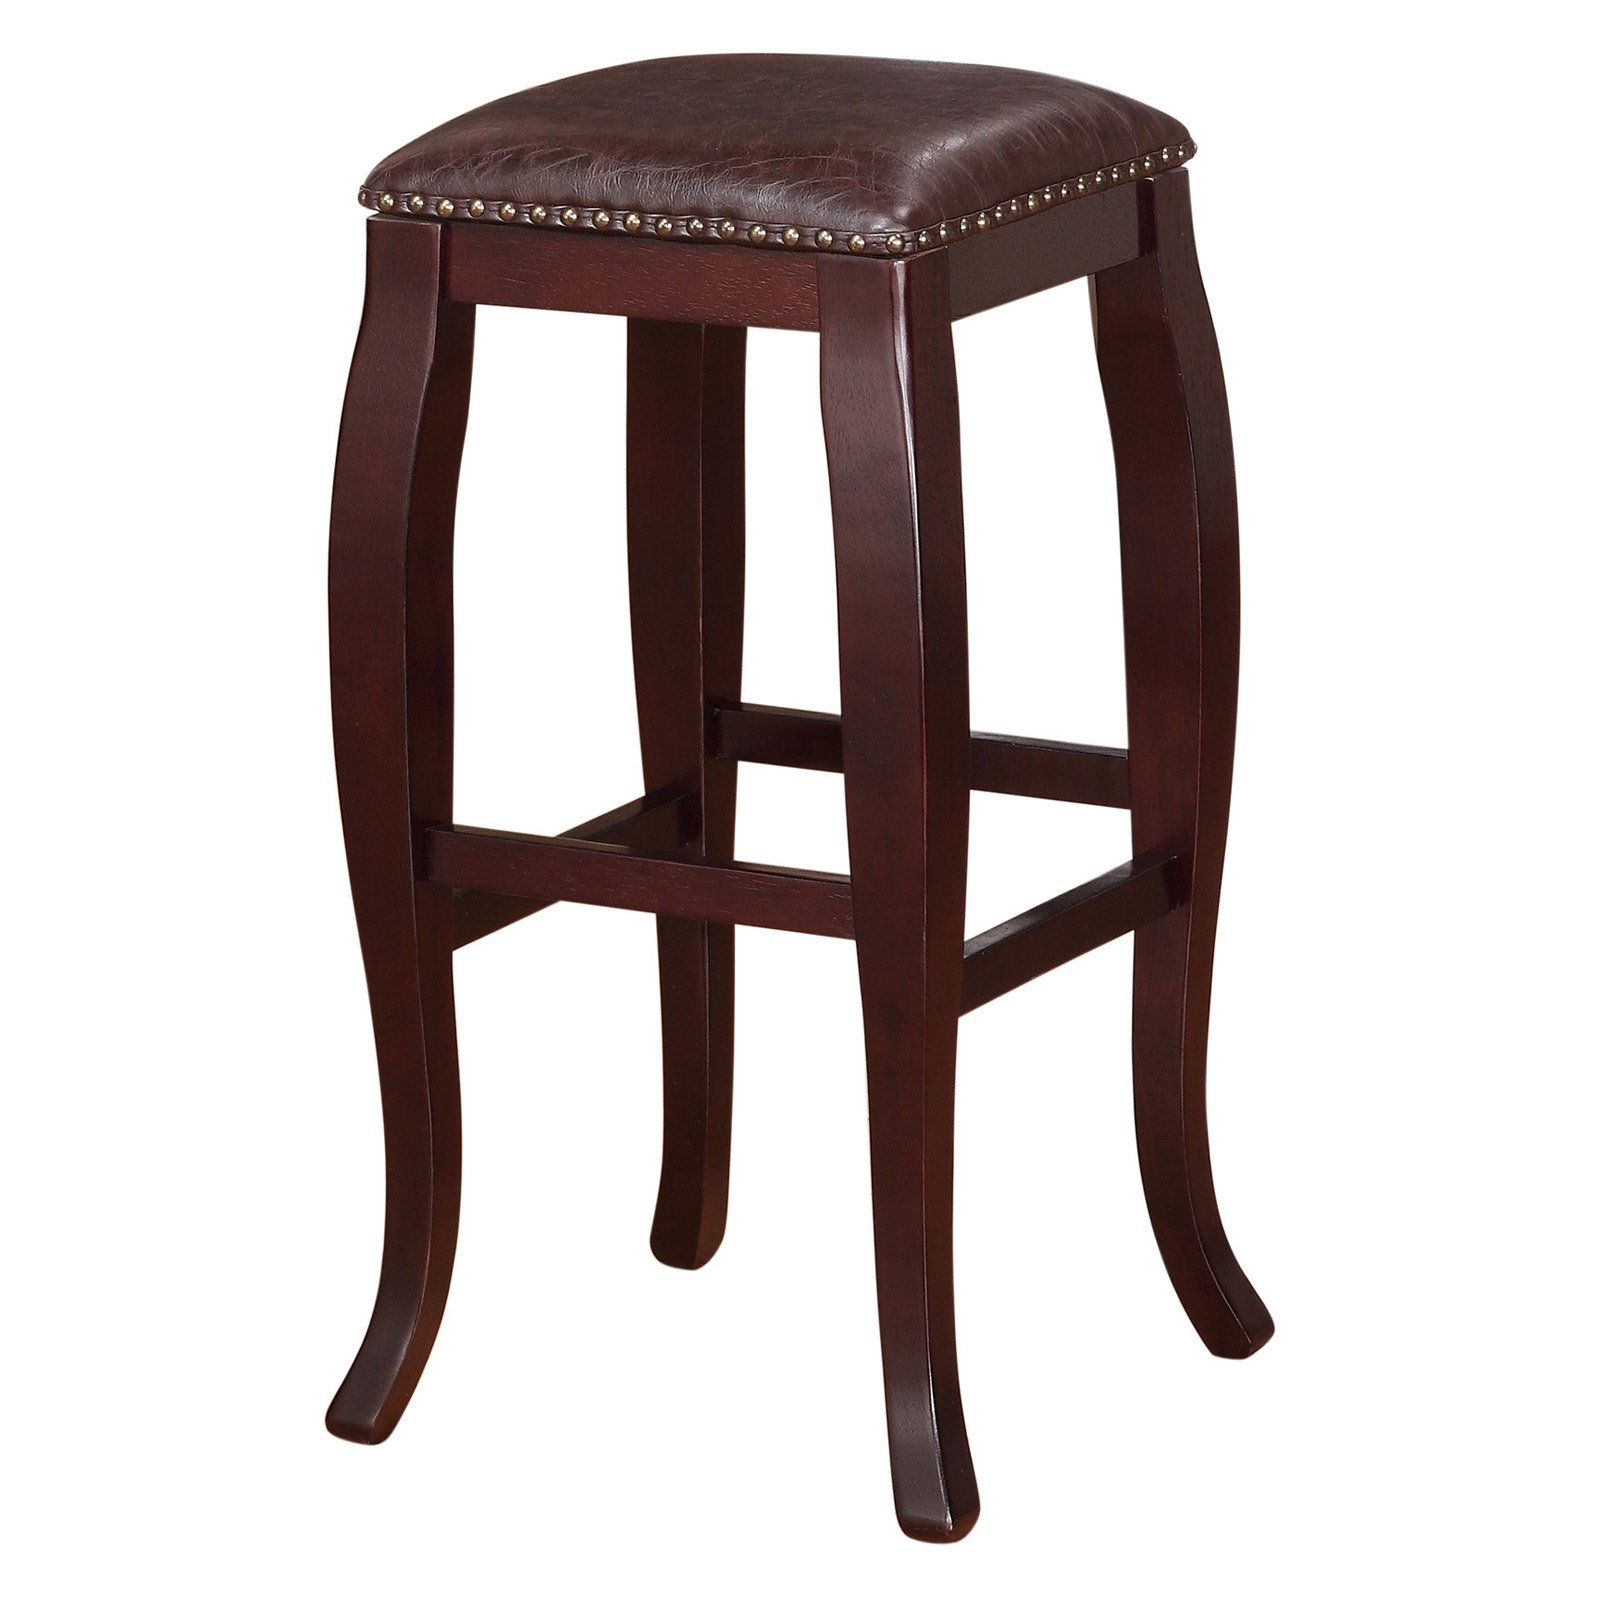 Linon San Francisco Square Top Bar Stool, Brown, 30 Inch Seat Height    Walmart.com